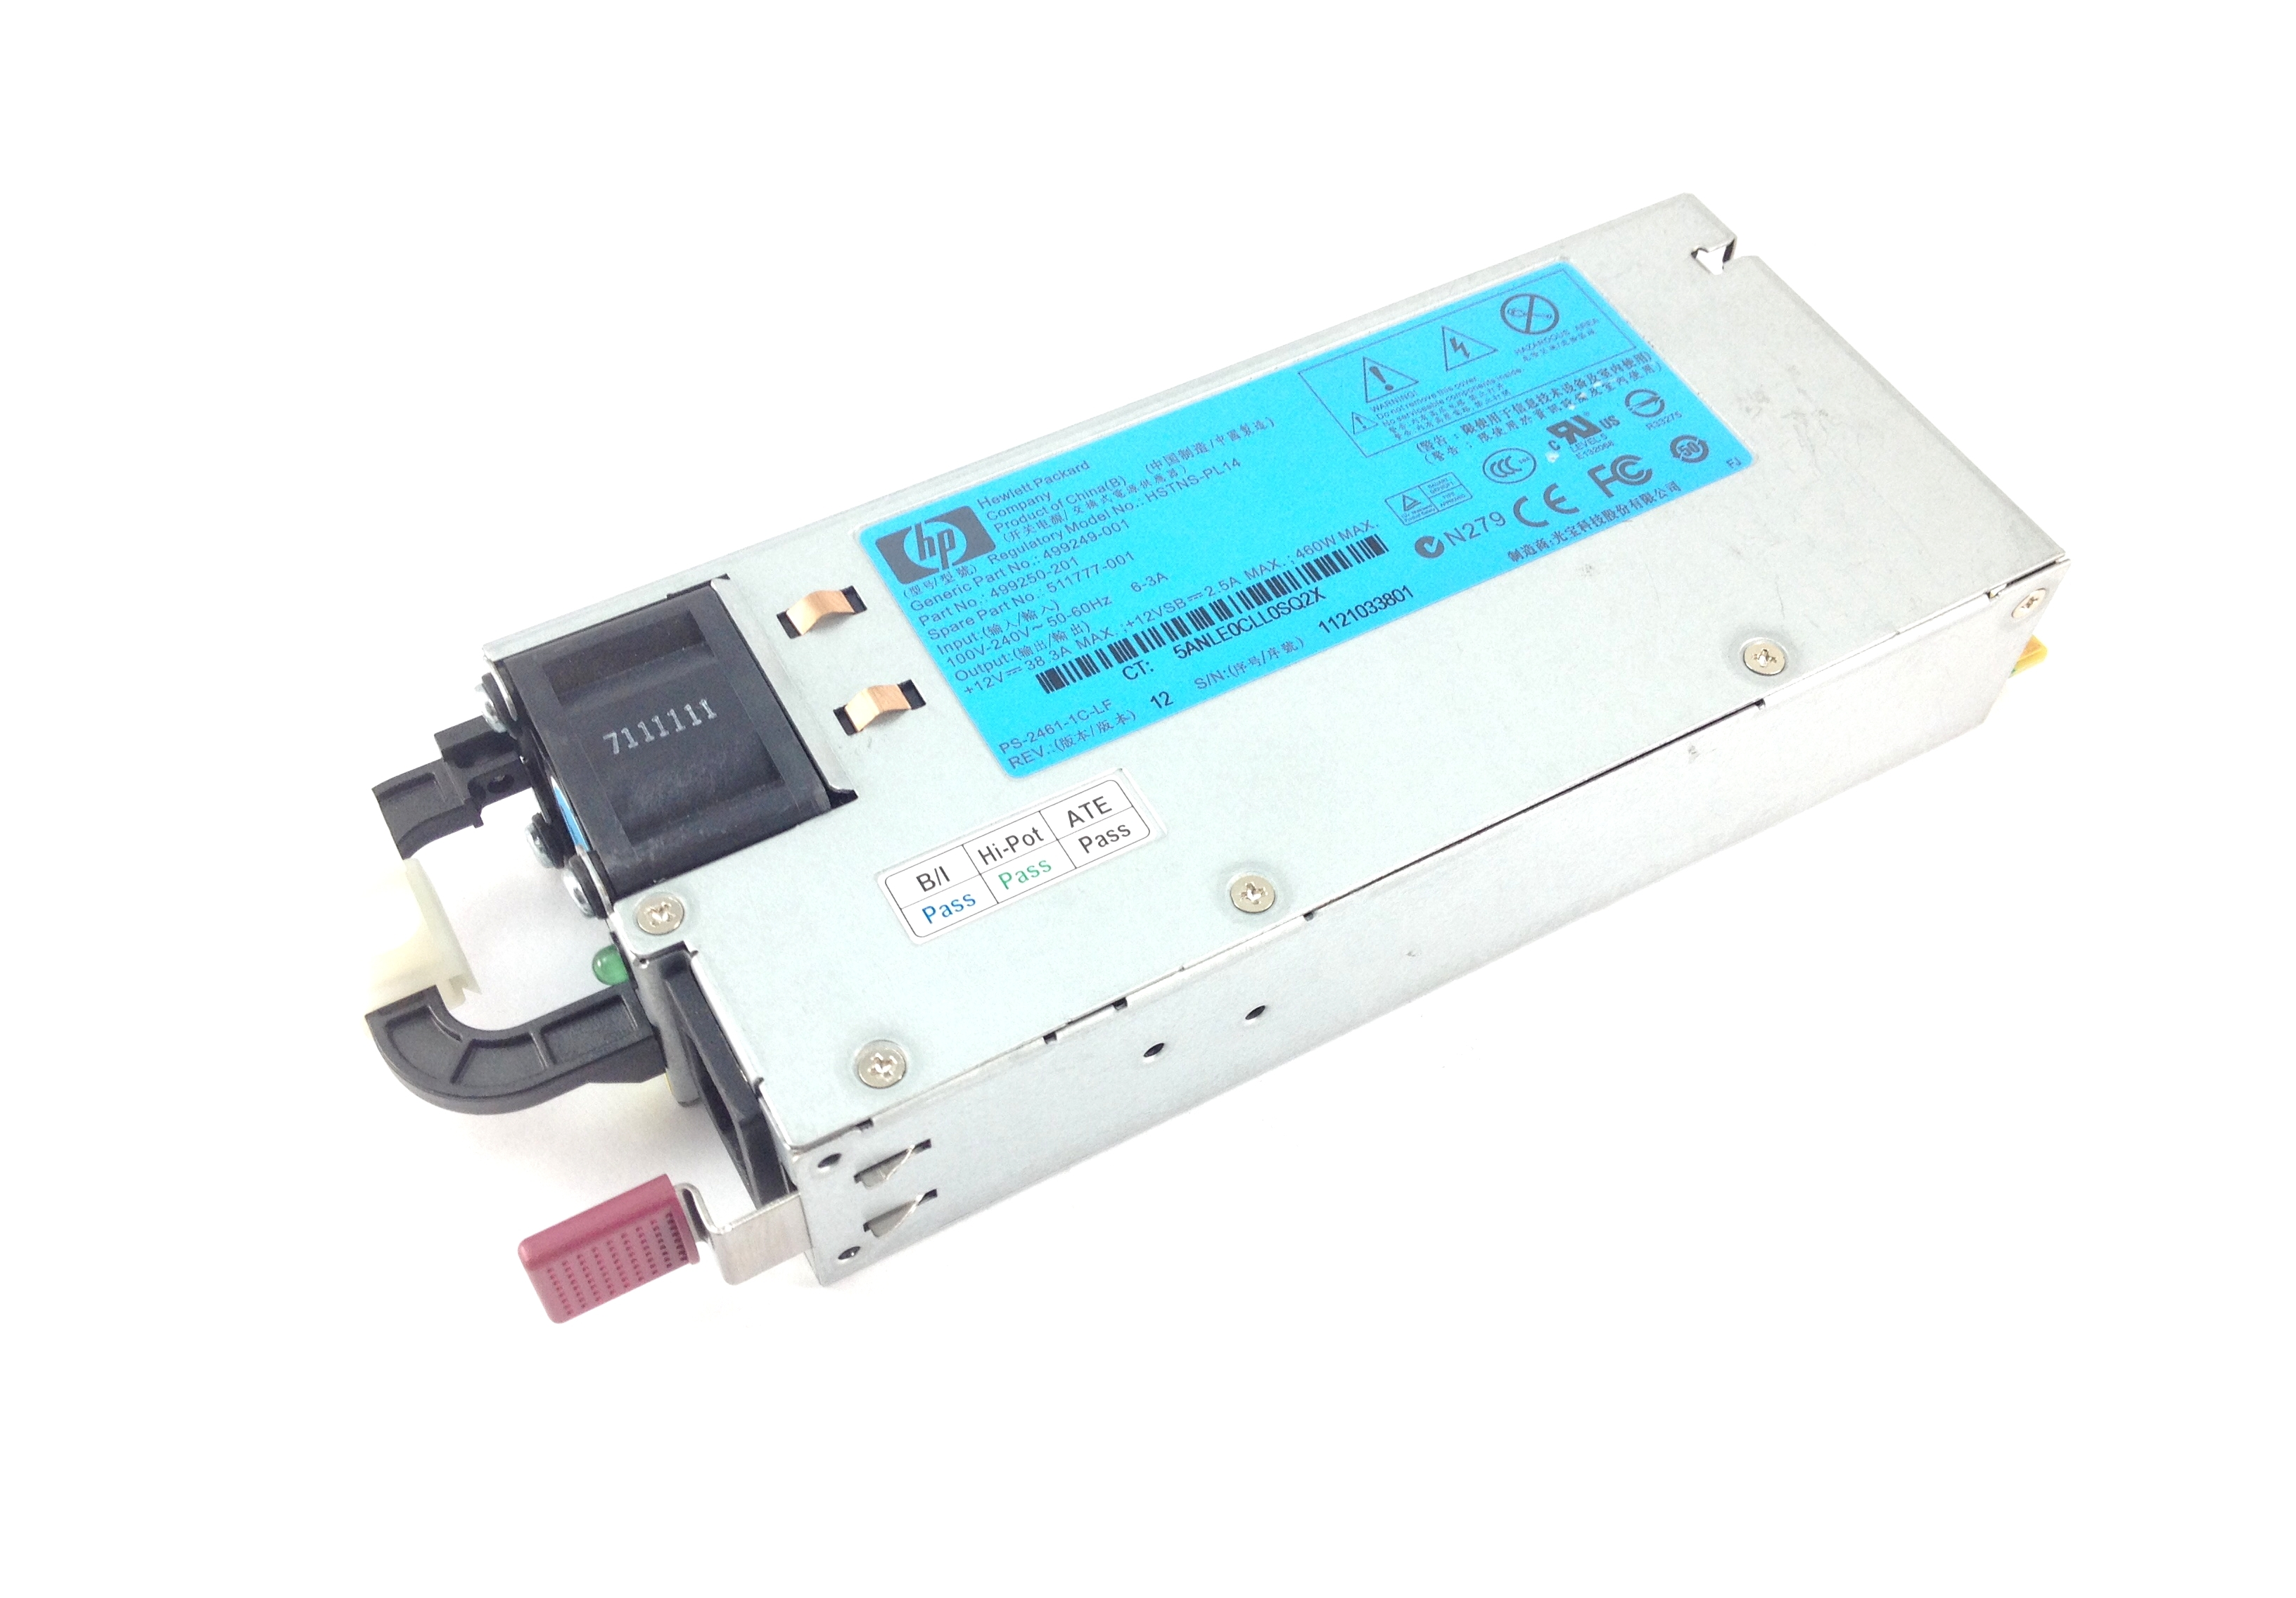 HP DL180/DL360/DL380/DL385/ML370 G6/G7/G8 460W Power Supply (511777-001)